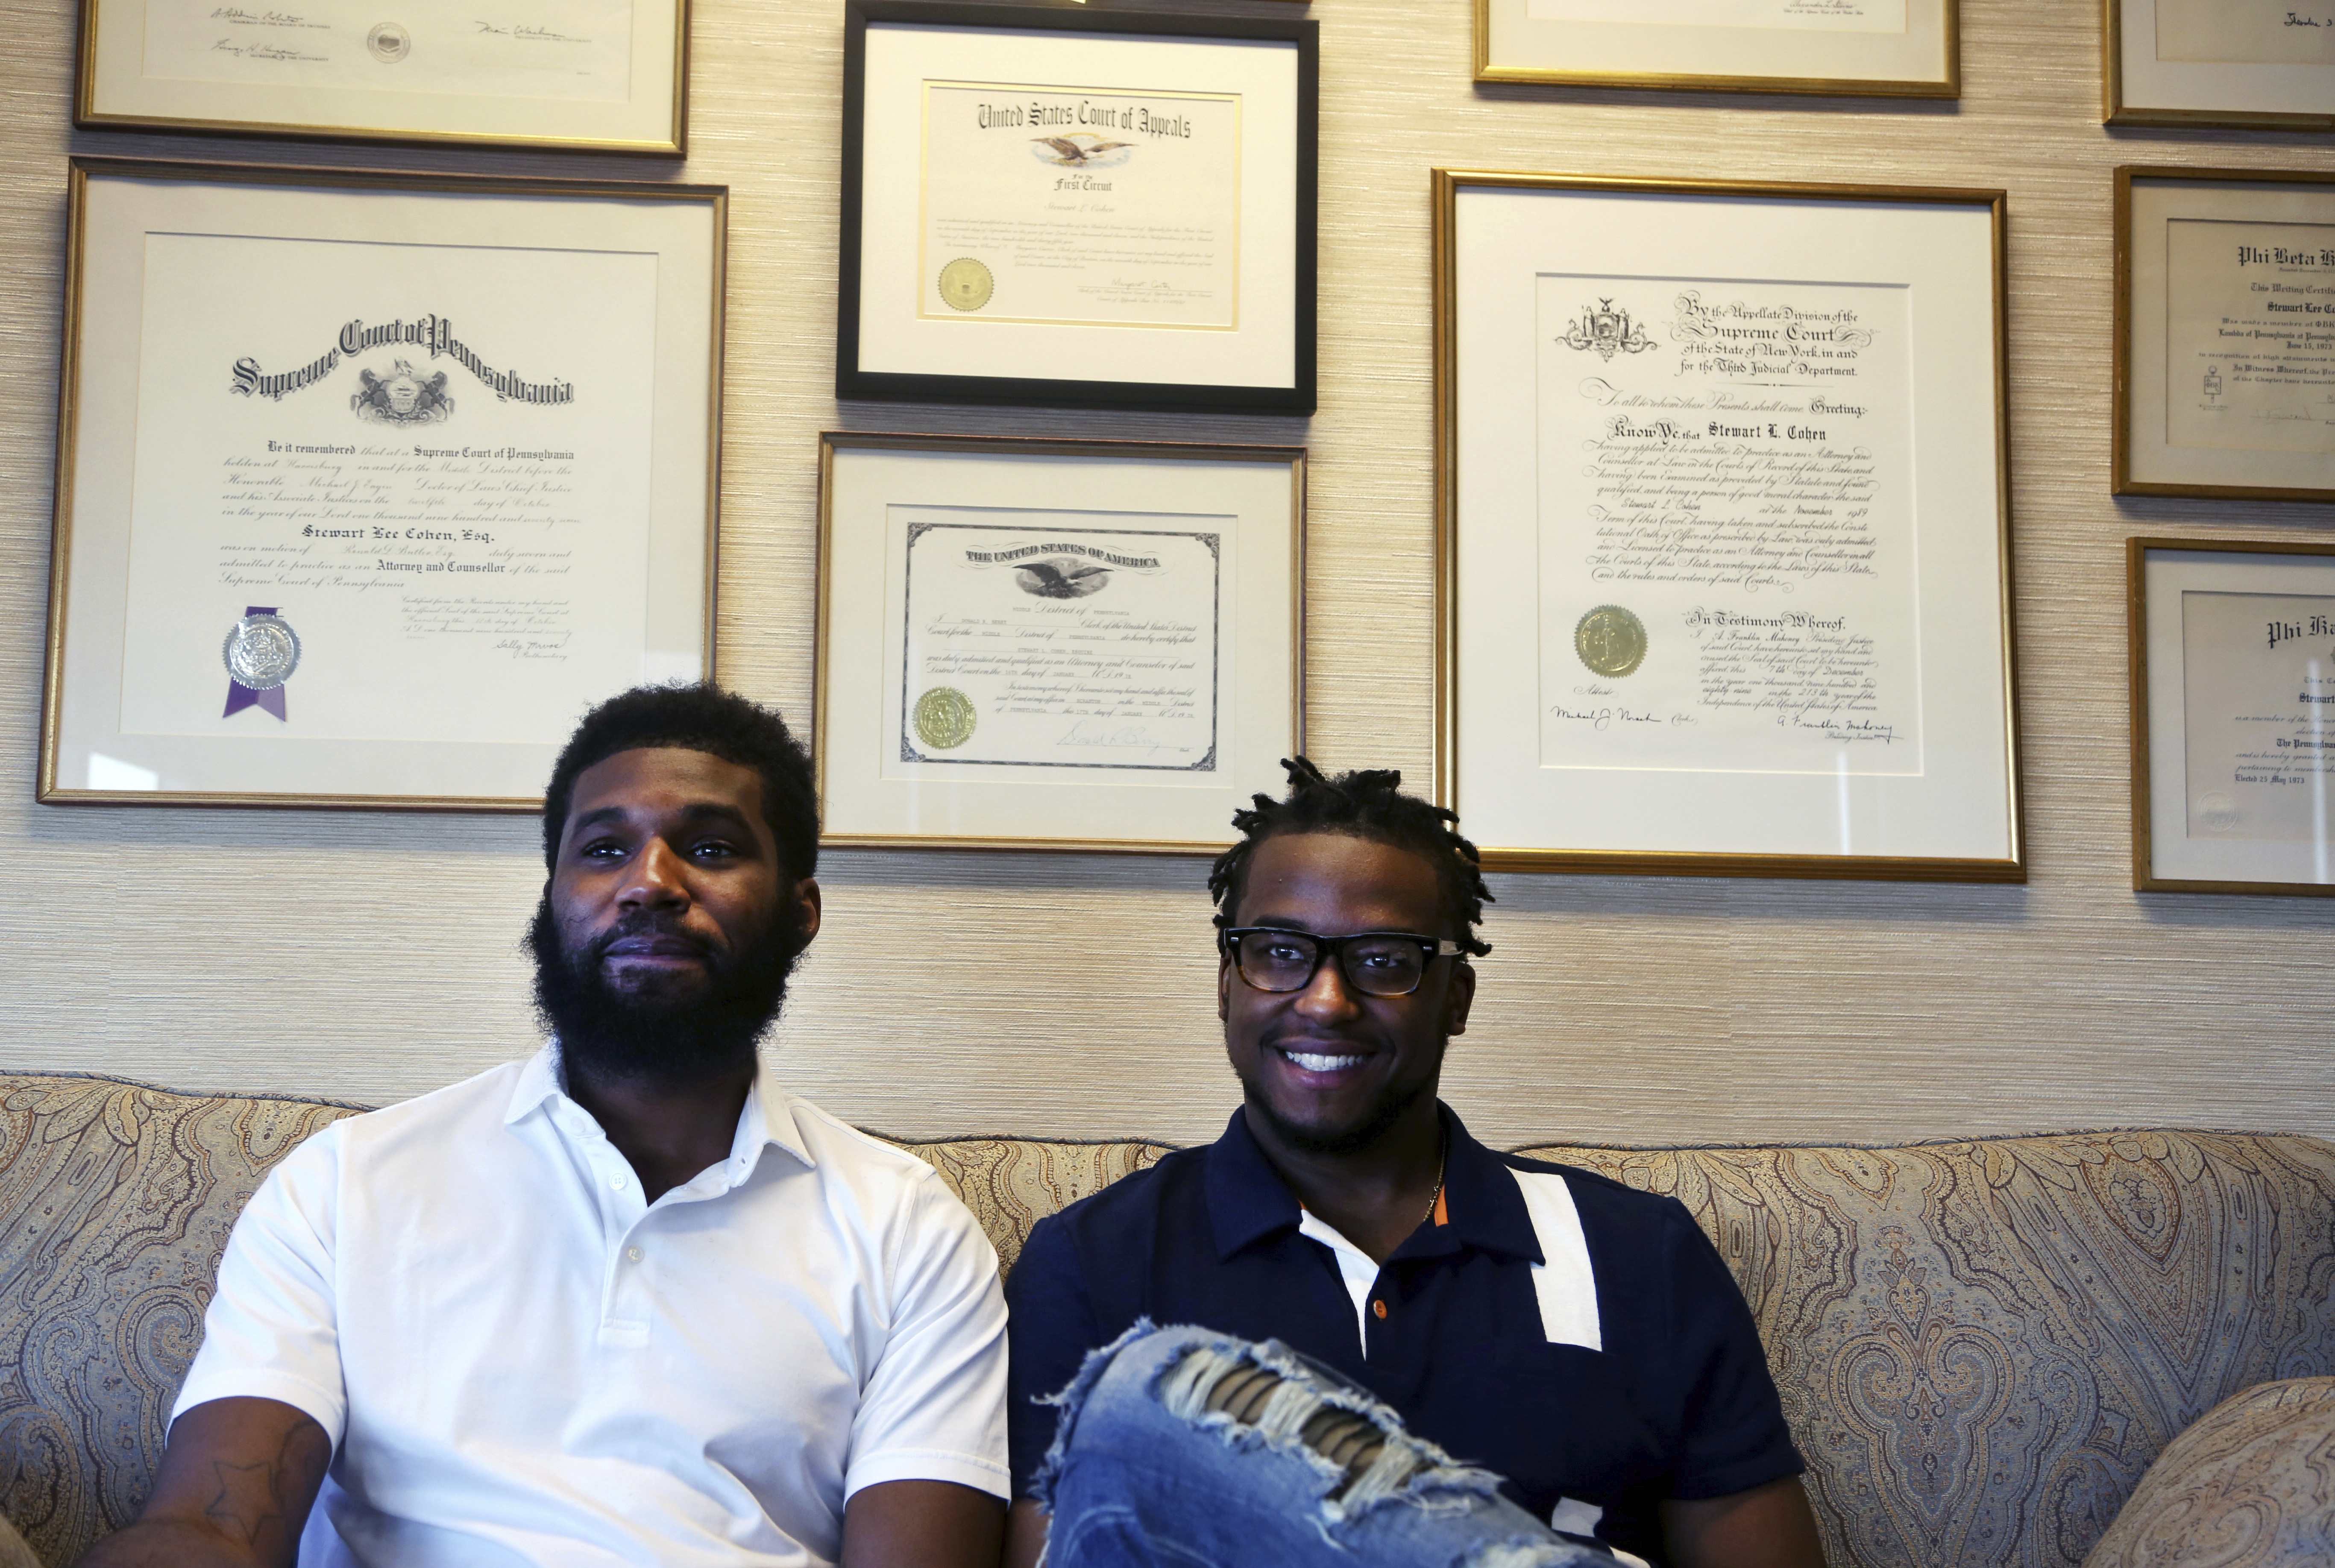 In this Wednesday April 18, 2018 photo, Rashon Nelson, left, and Donte Robinson, right, sit on their attorney's sofa as they pose for a portrait following an interview with The Associated Press in Philadelphia. Their arrests at a local Starbucks quickly became a viral video and galvanized people around the country who saw the incident as modern-day racism.